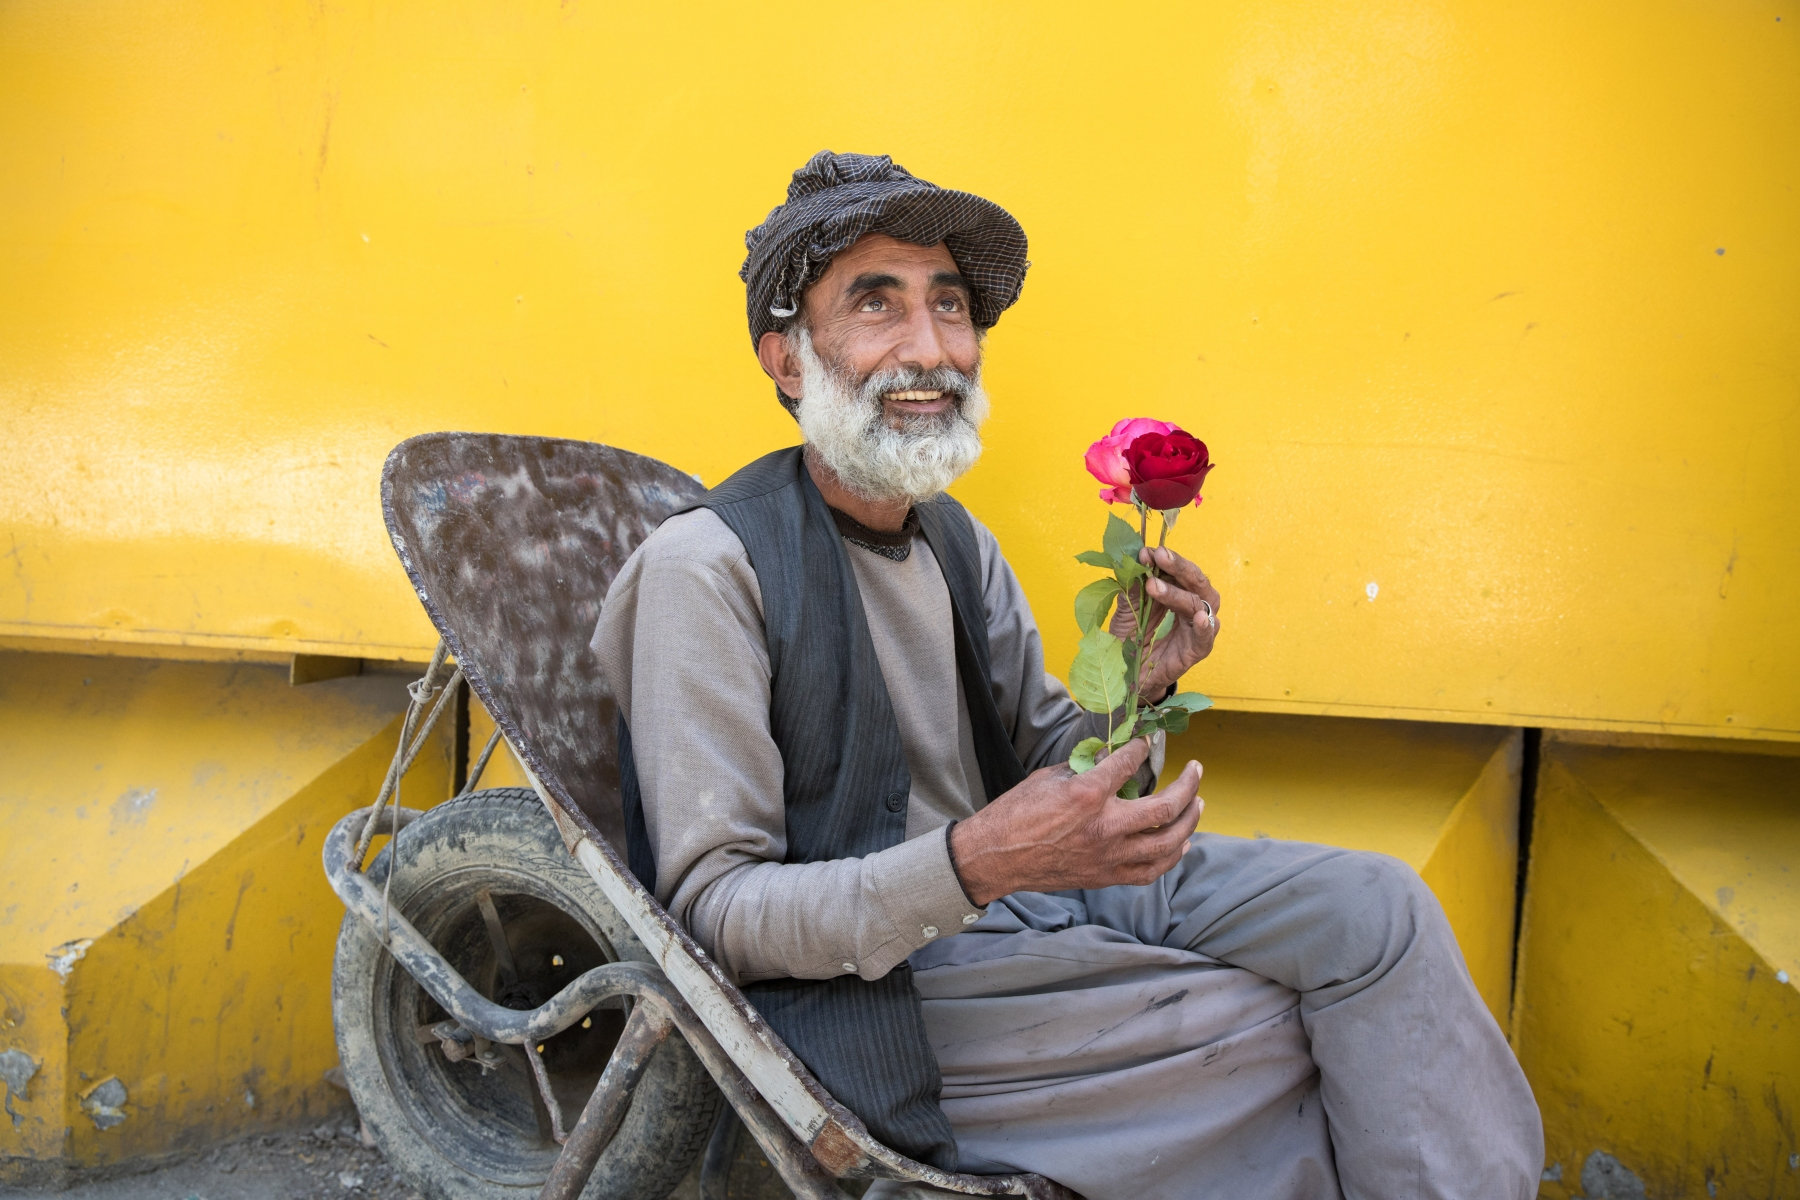 Mohammed Ehsan lives in the Lab e Darya district of Kabul, but he comes to work at Shah e now in the center of the capital. His job most often consists of carrying customers' bulky purchases in his wheelbarrow. He earns around 300/400 afghanis per day (around 5 euros). He has always loved flowers a lot, and roses are his favorite flowers. He finds them very delicate.